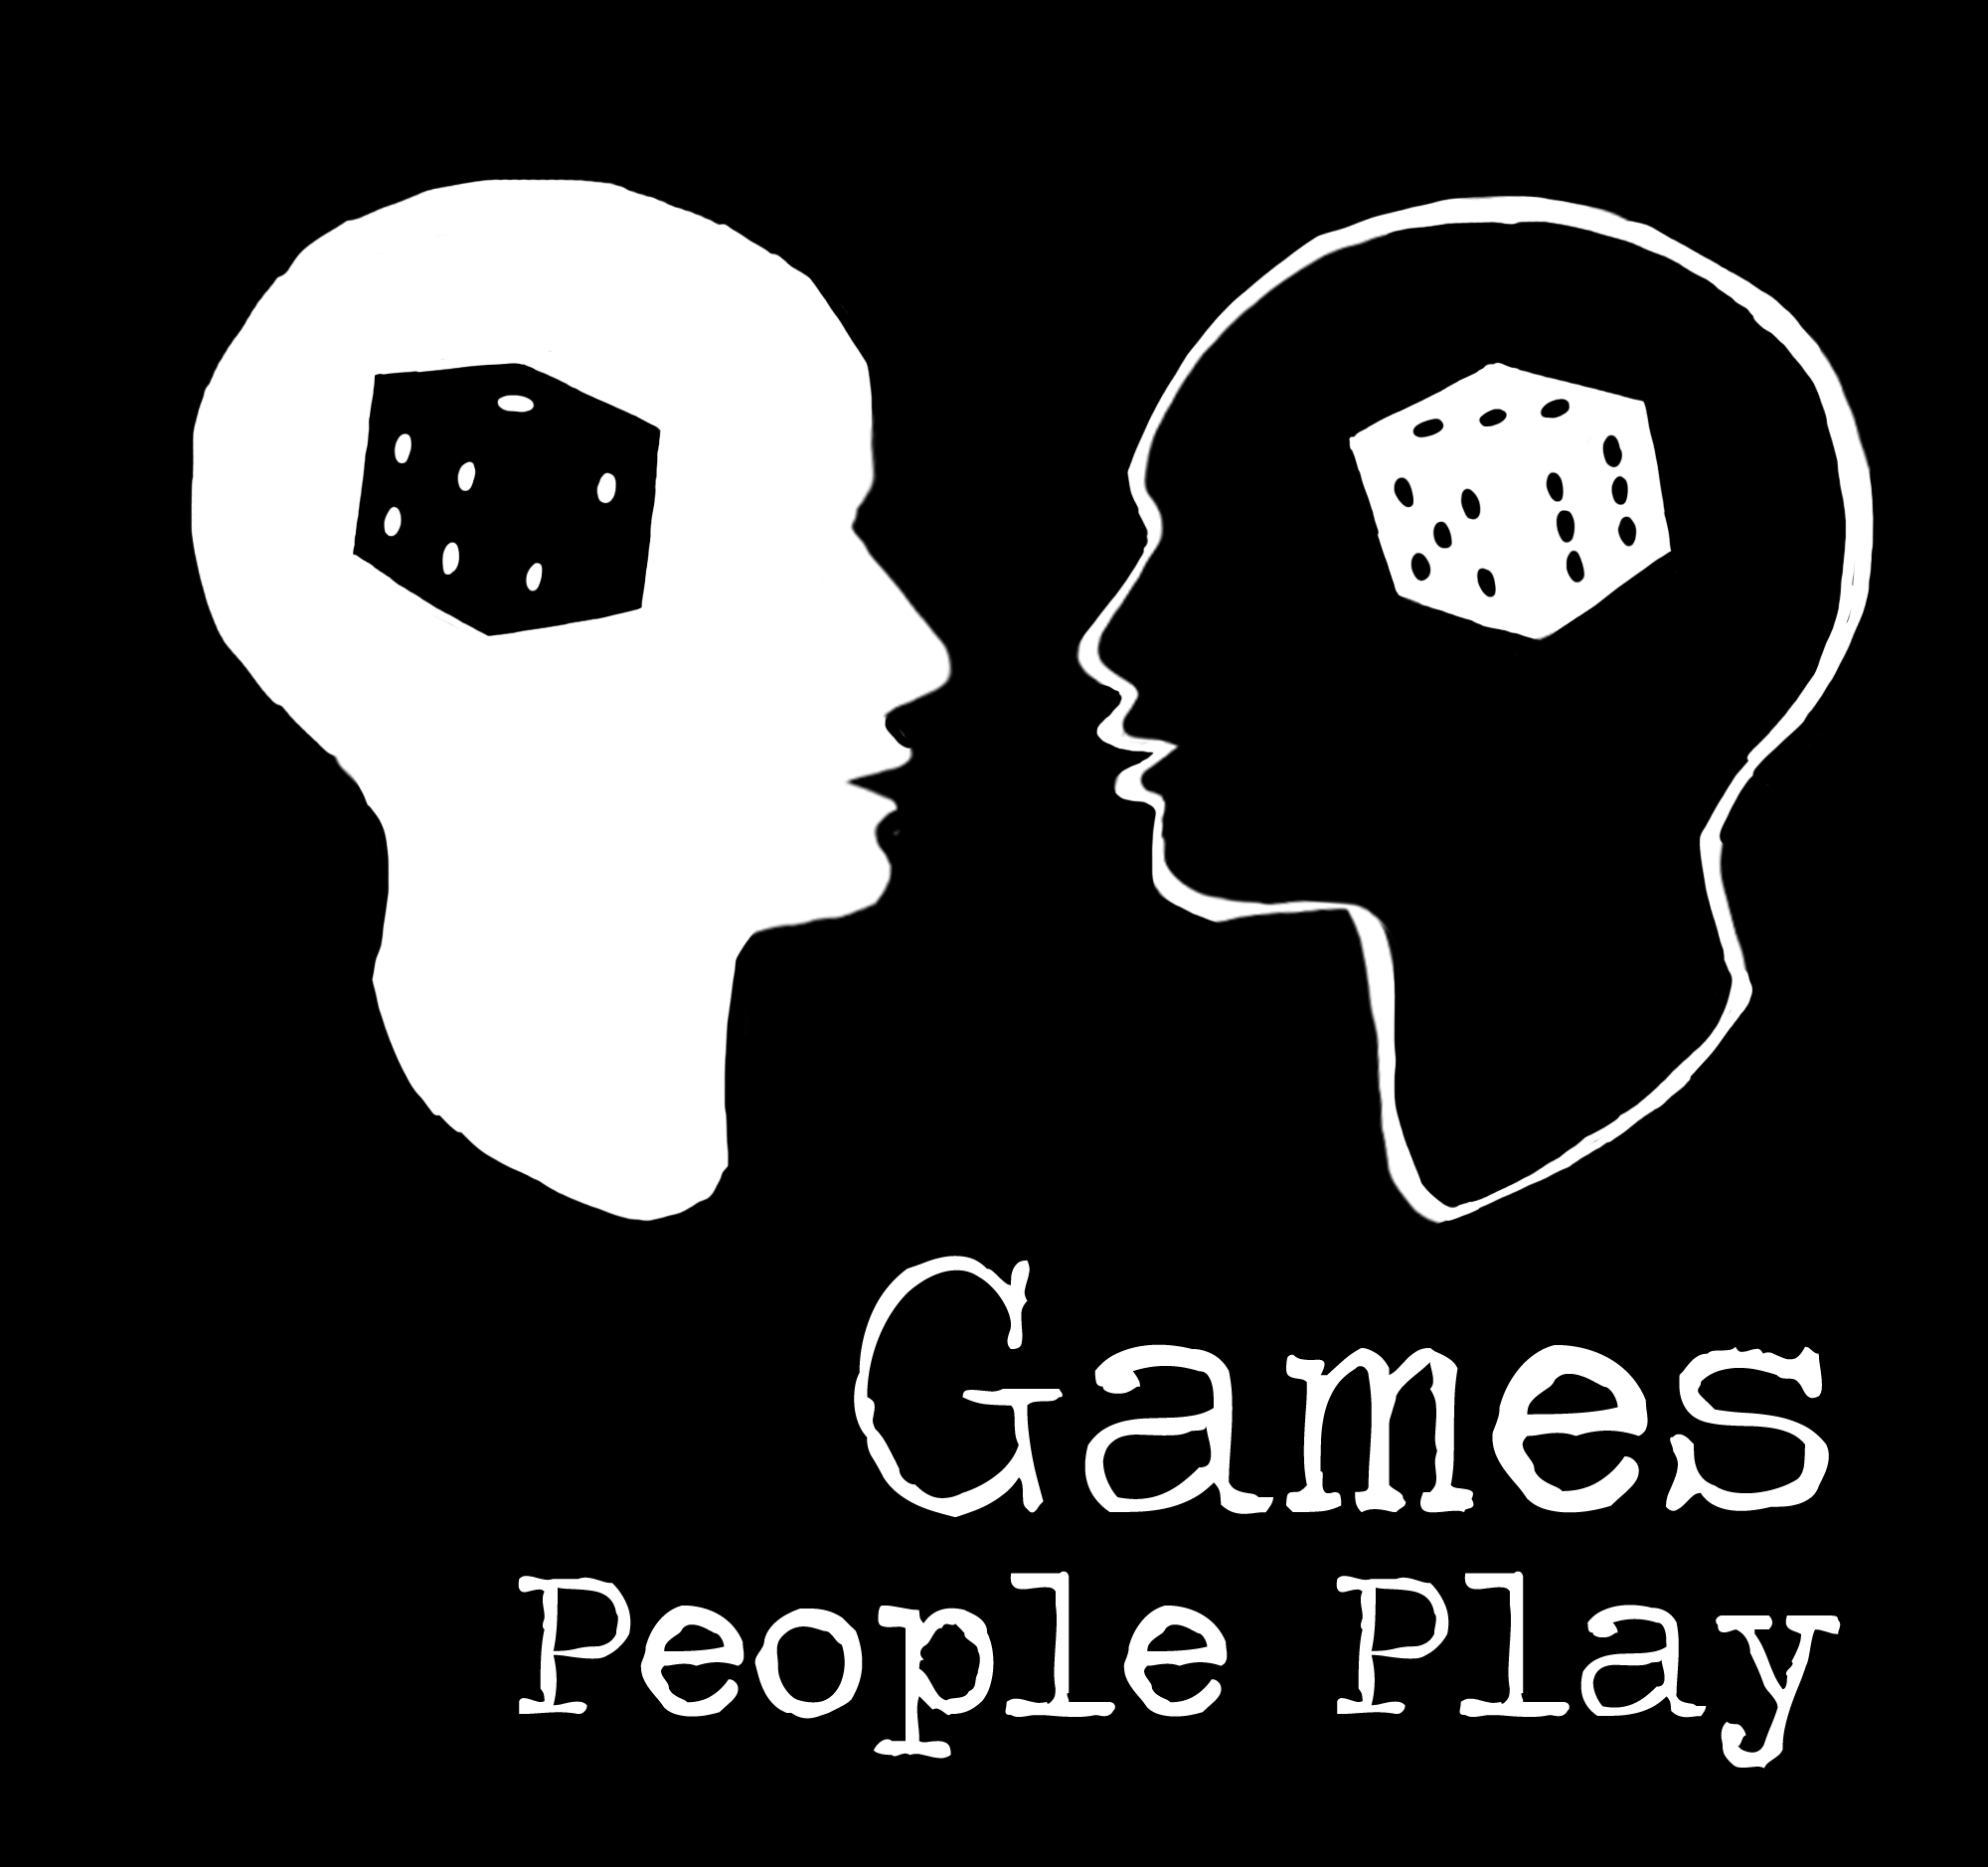 Episode 5: The Standardized Test Game